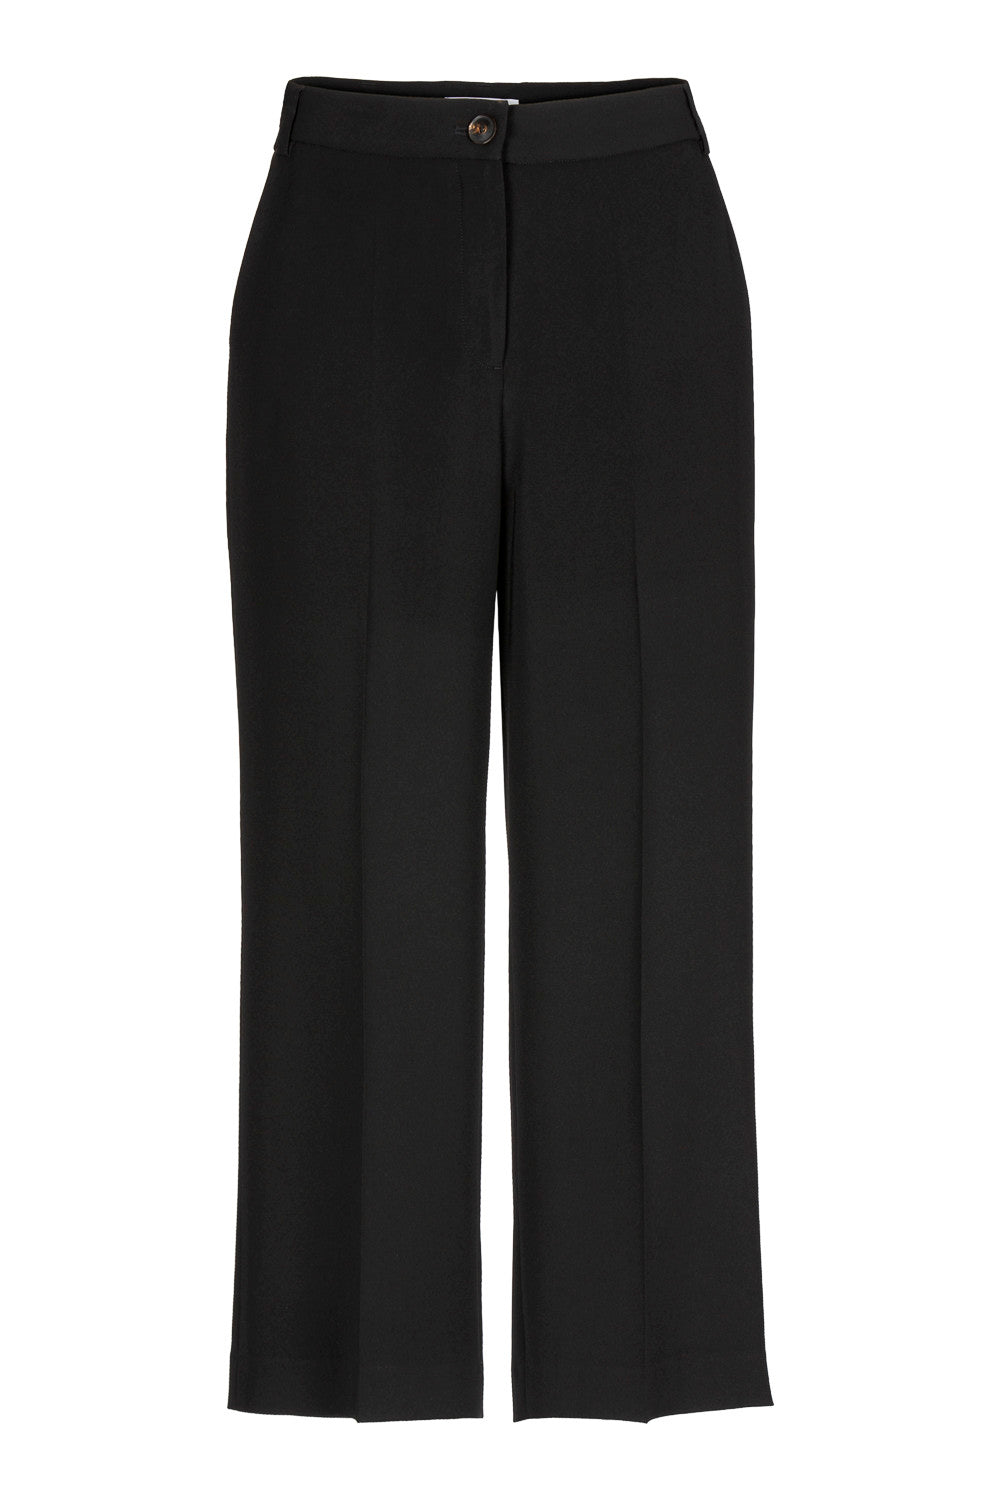 By-Bar  Netty Pant / women